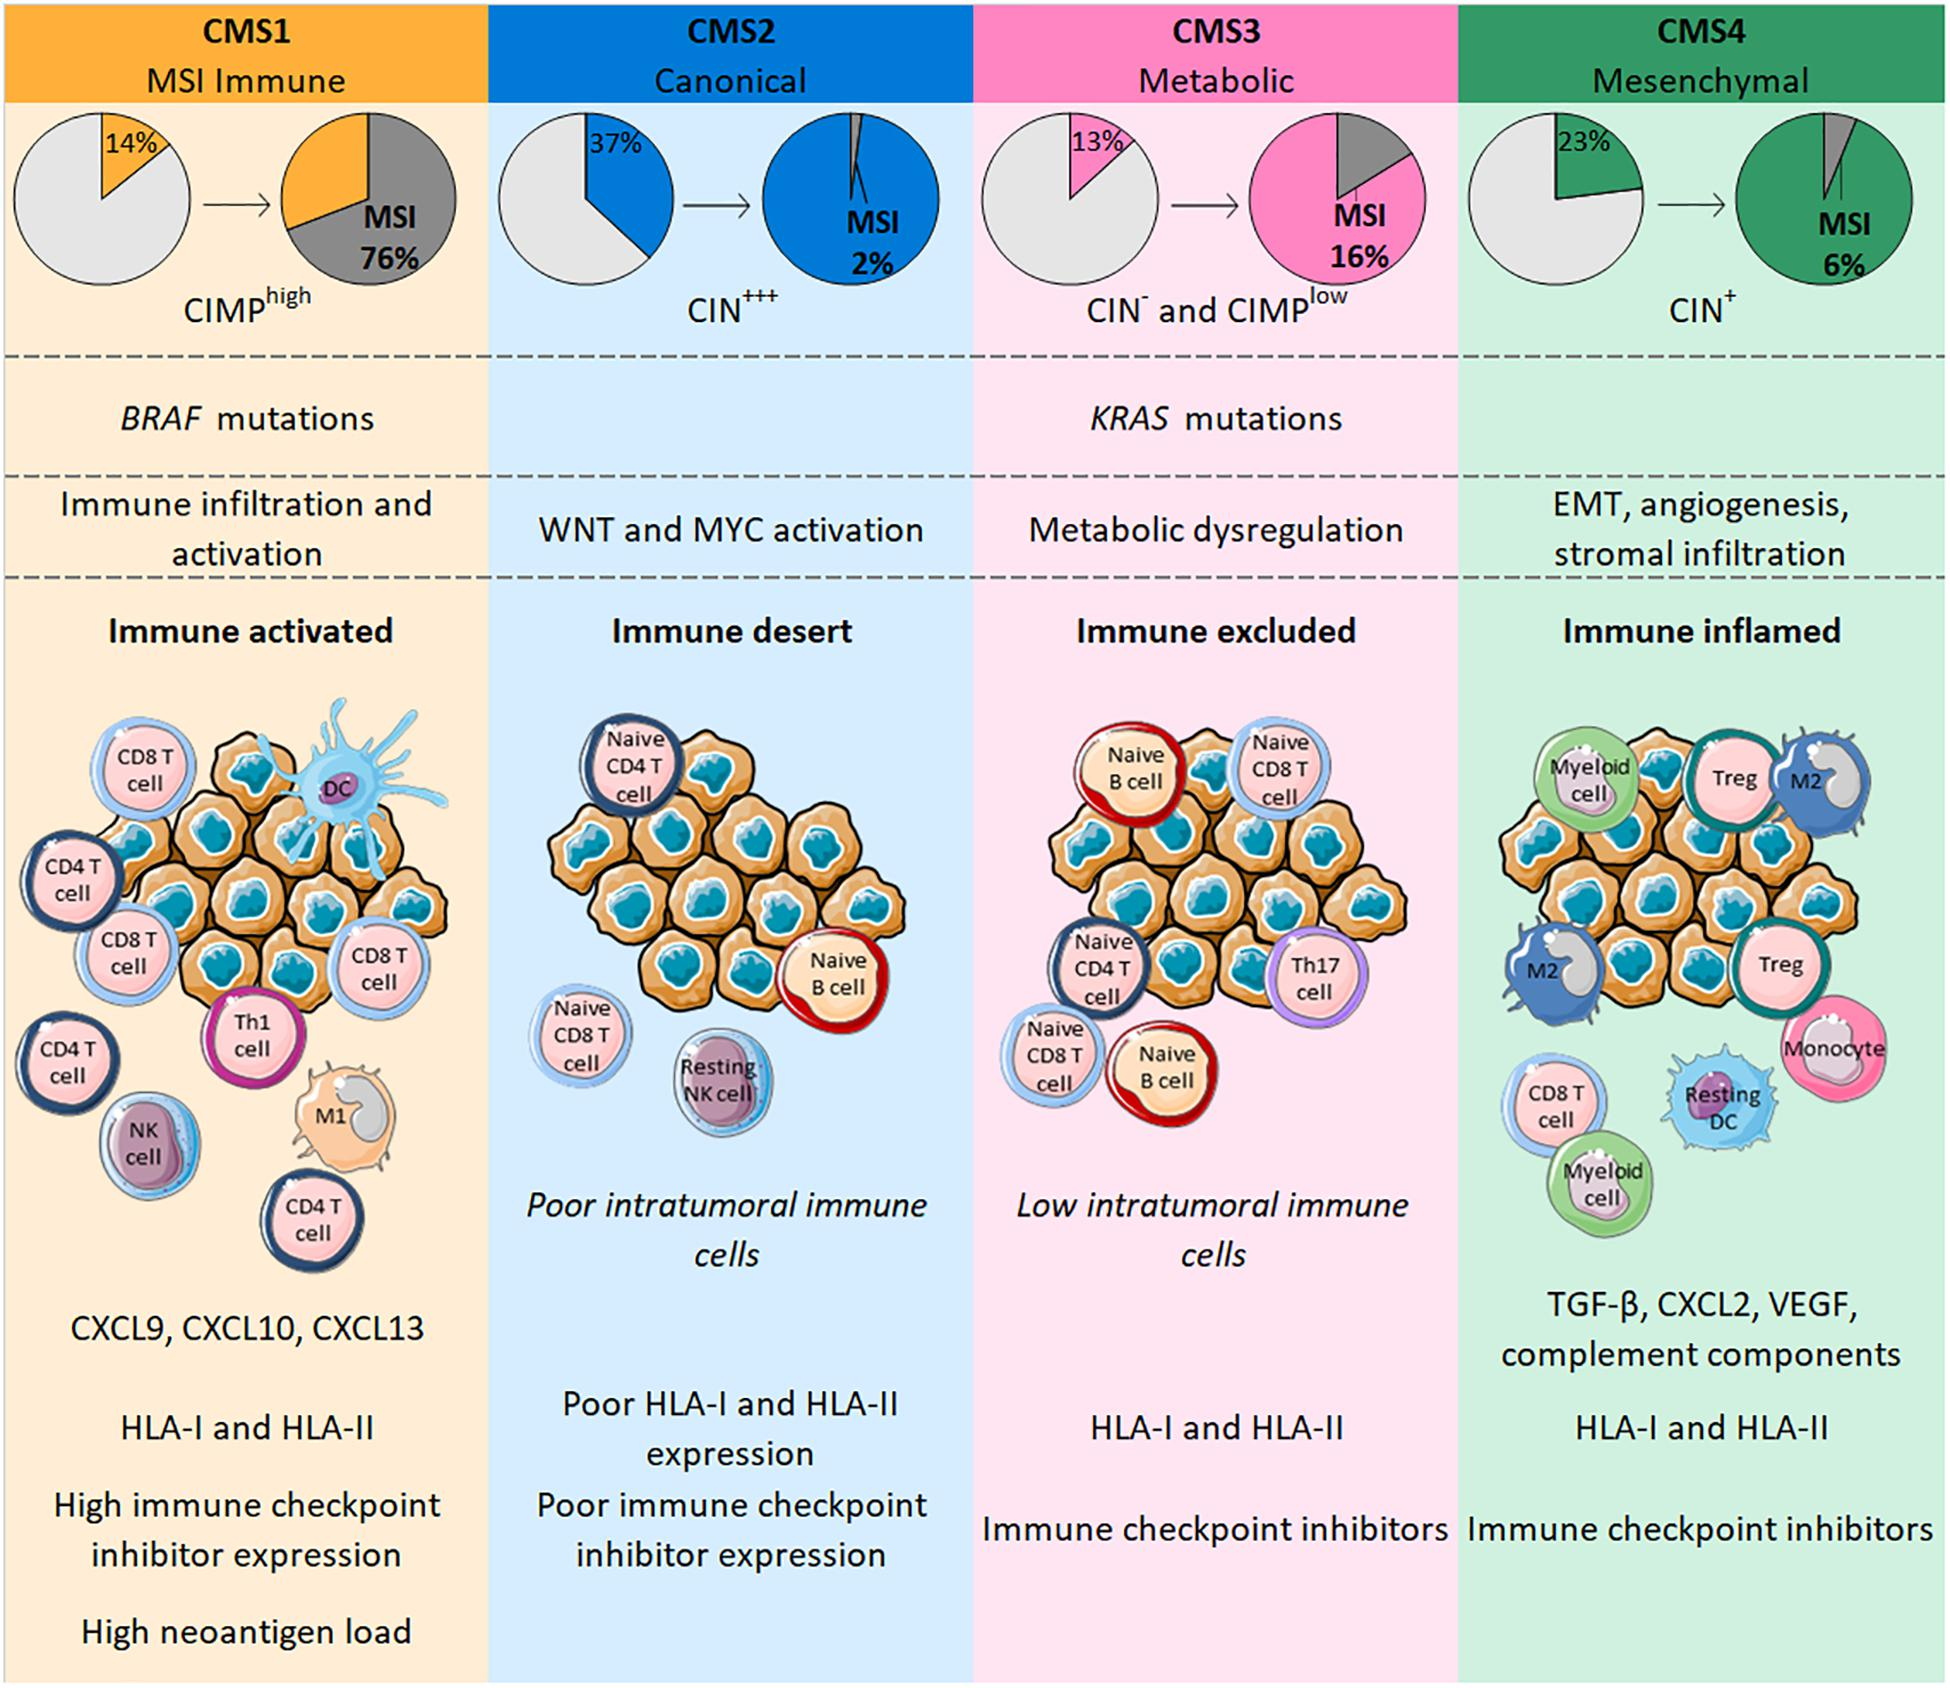 Frontiers Relationships Between Immune Landscapes Genetic Subtypes And Responses To Immunotherapy In Colorectal Cancer Immunology